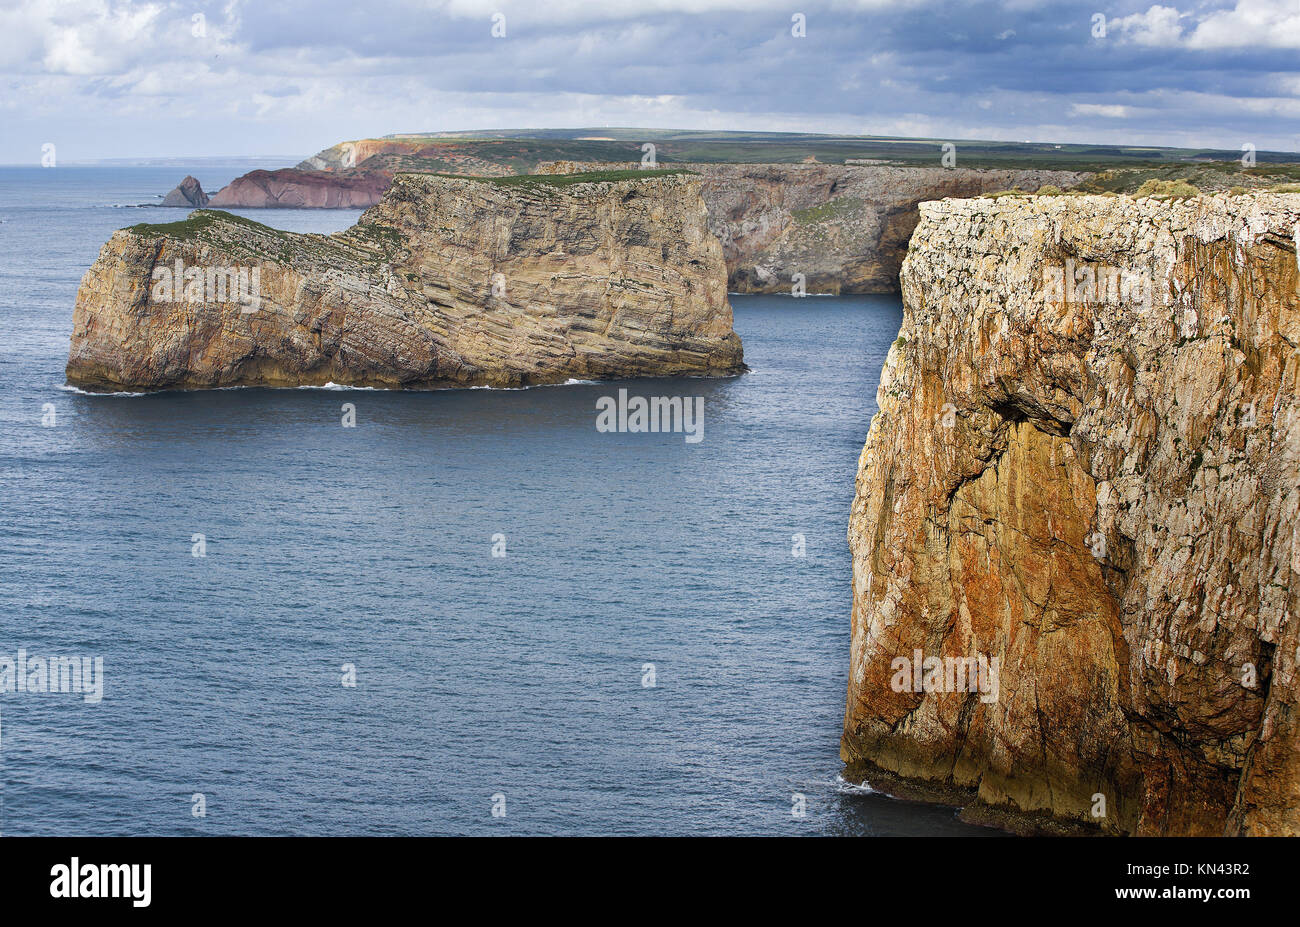 Cabo de Sao Vicente, the Most South Westerly point of Europe, Portugal. Stock Photo